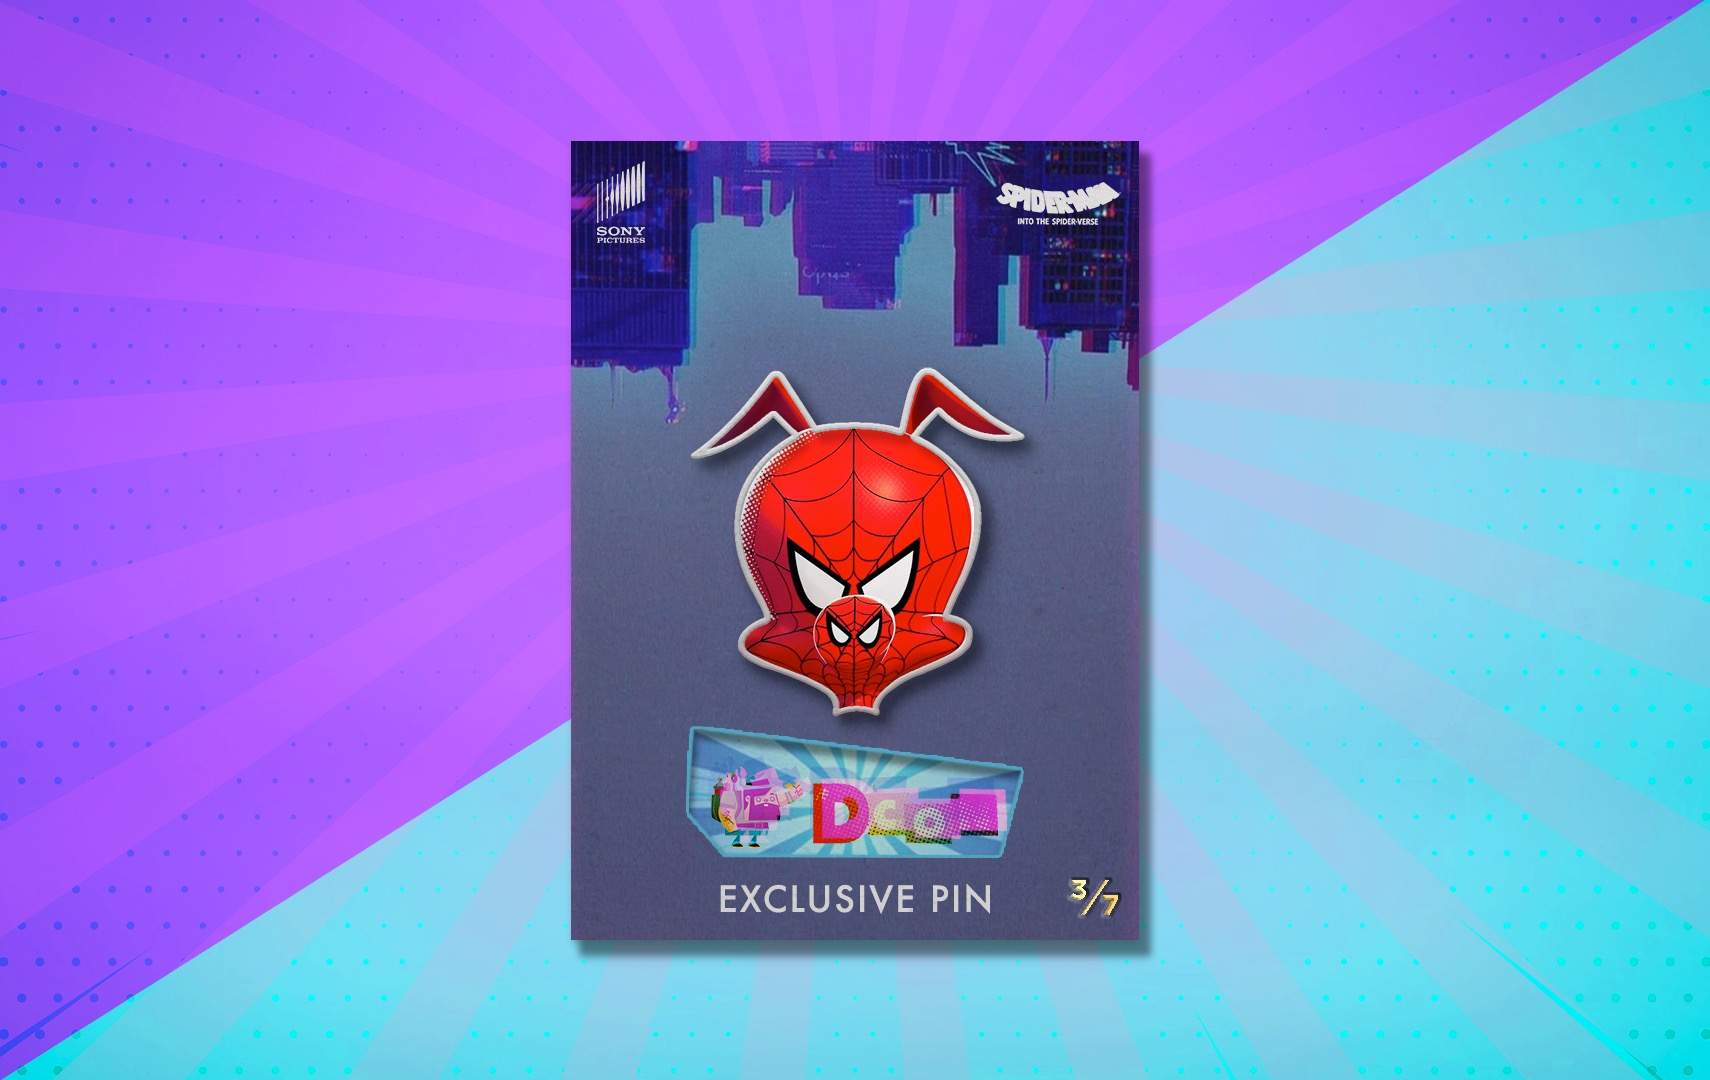 DC_DCon_Deck_Spiderverse_Pin_03.jpeg